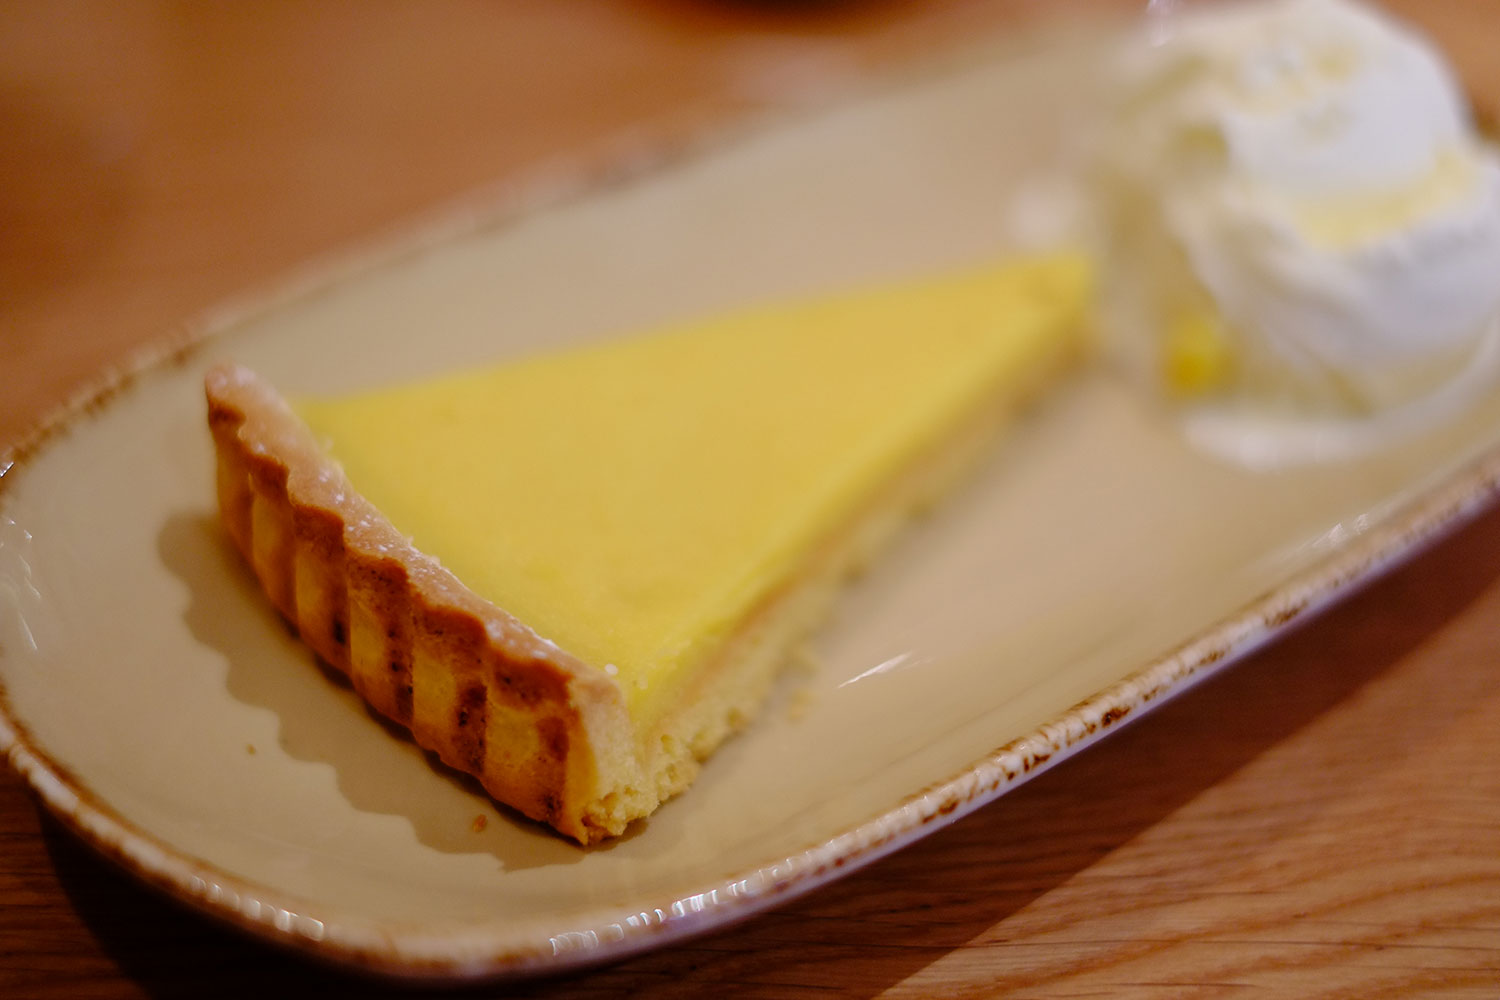 Lemon Pie with Clotted Cream Ice Cream